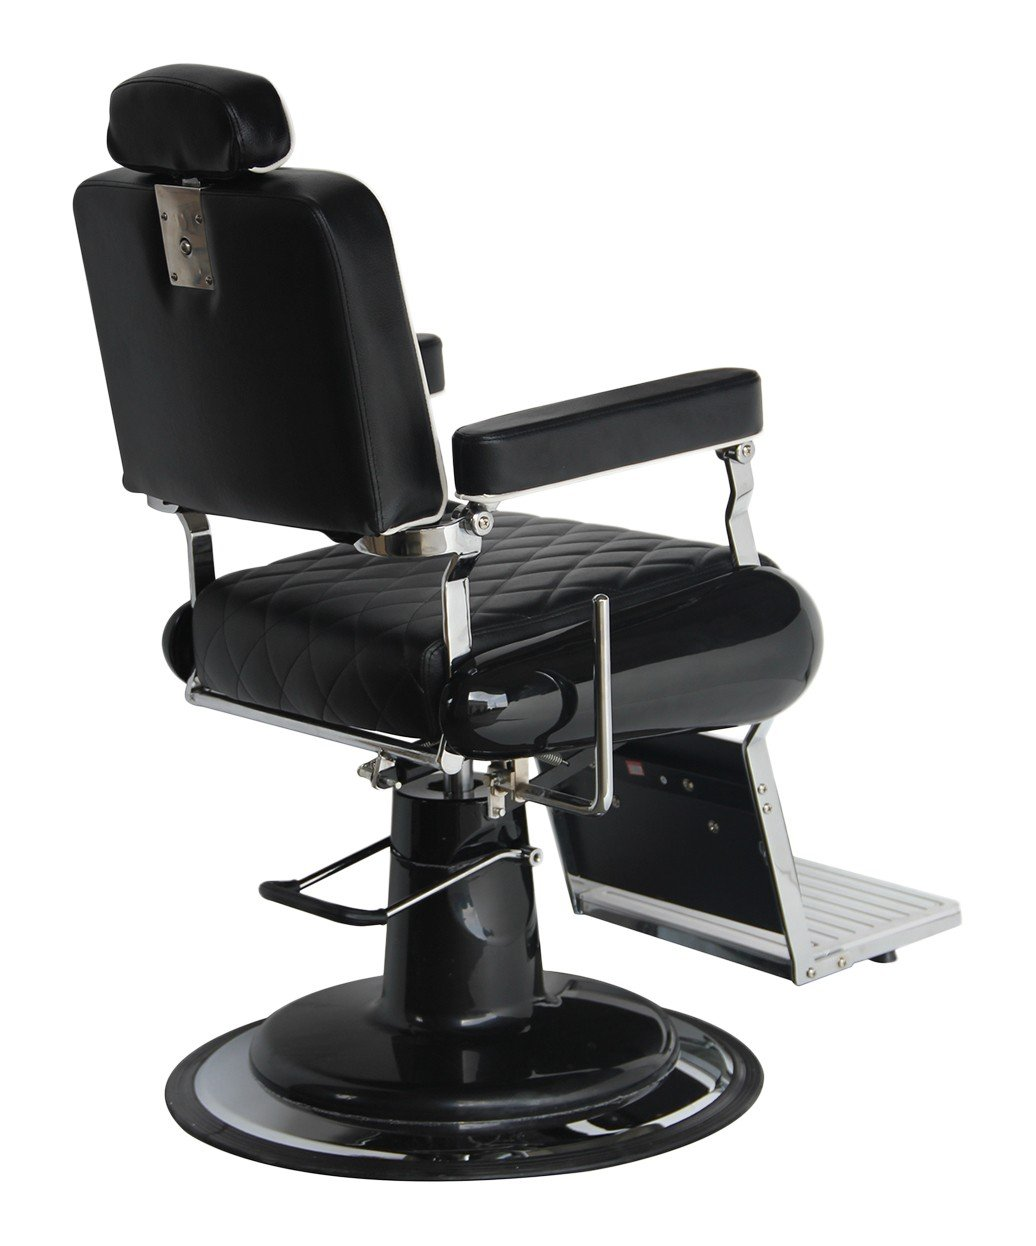 Amazon.com: Onyx profesional Silla de Barber: Beauty